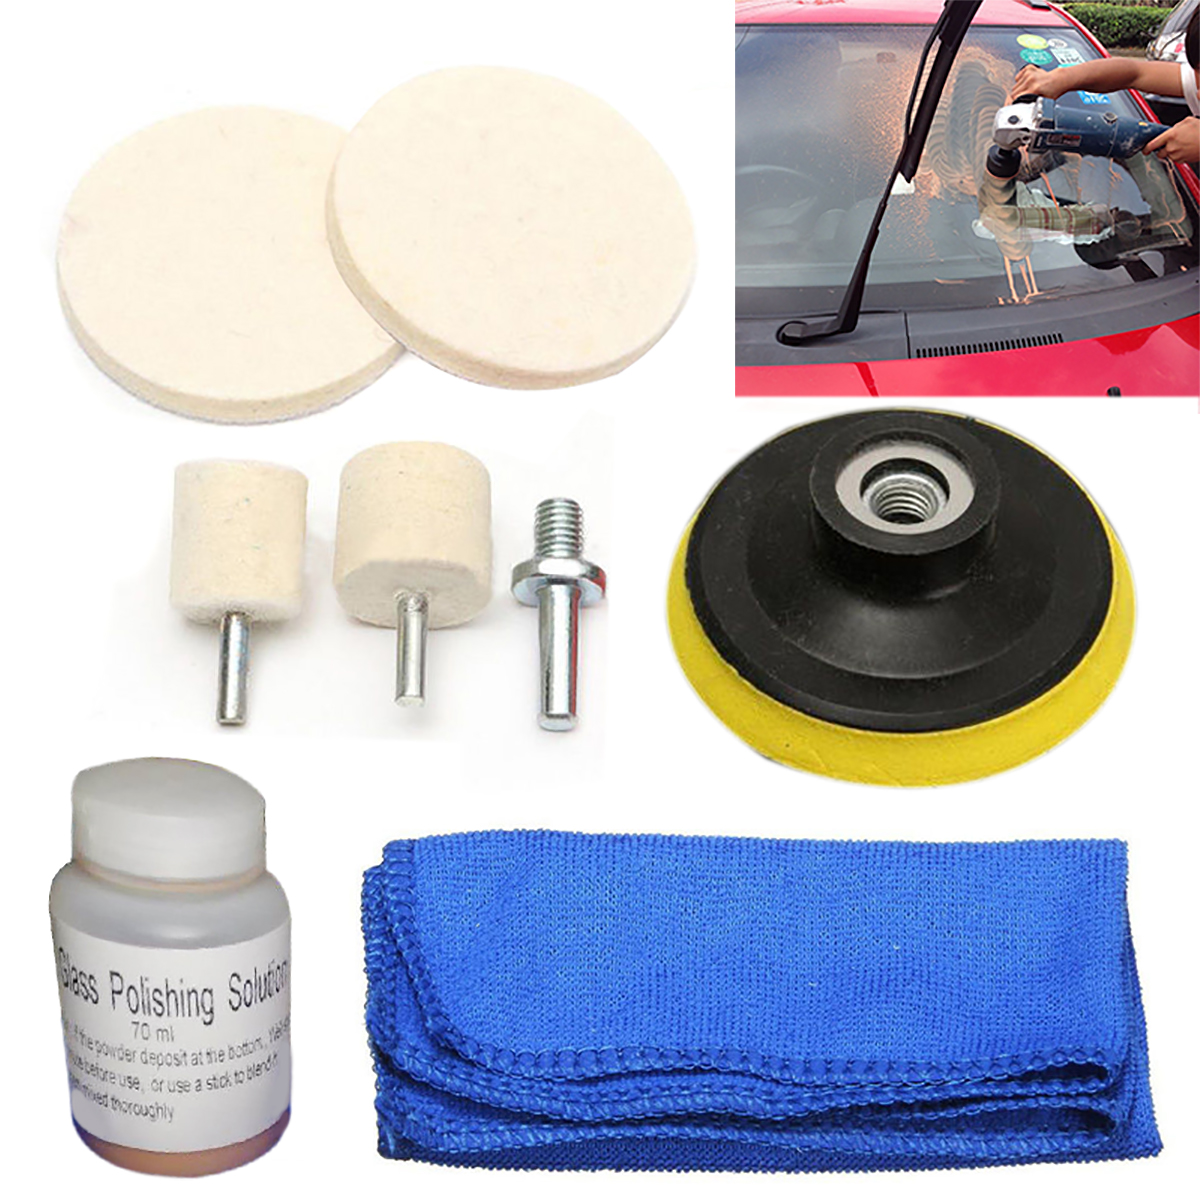 Mayitr Glass Polishing Kit Scratch Remover 70ml Solution + Wool Polishing Pads Wheel + Cloth For Car Windscreen Rear Windows